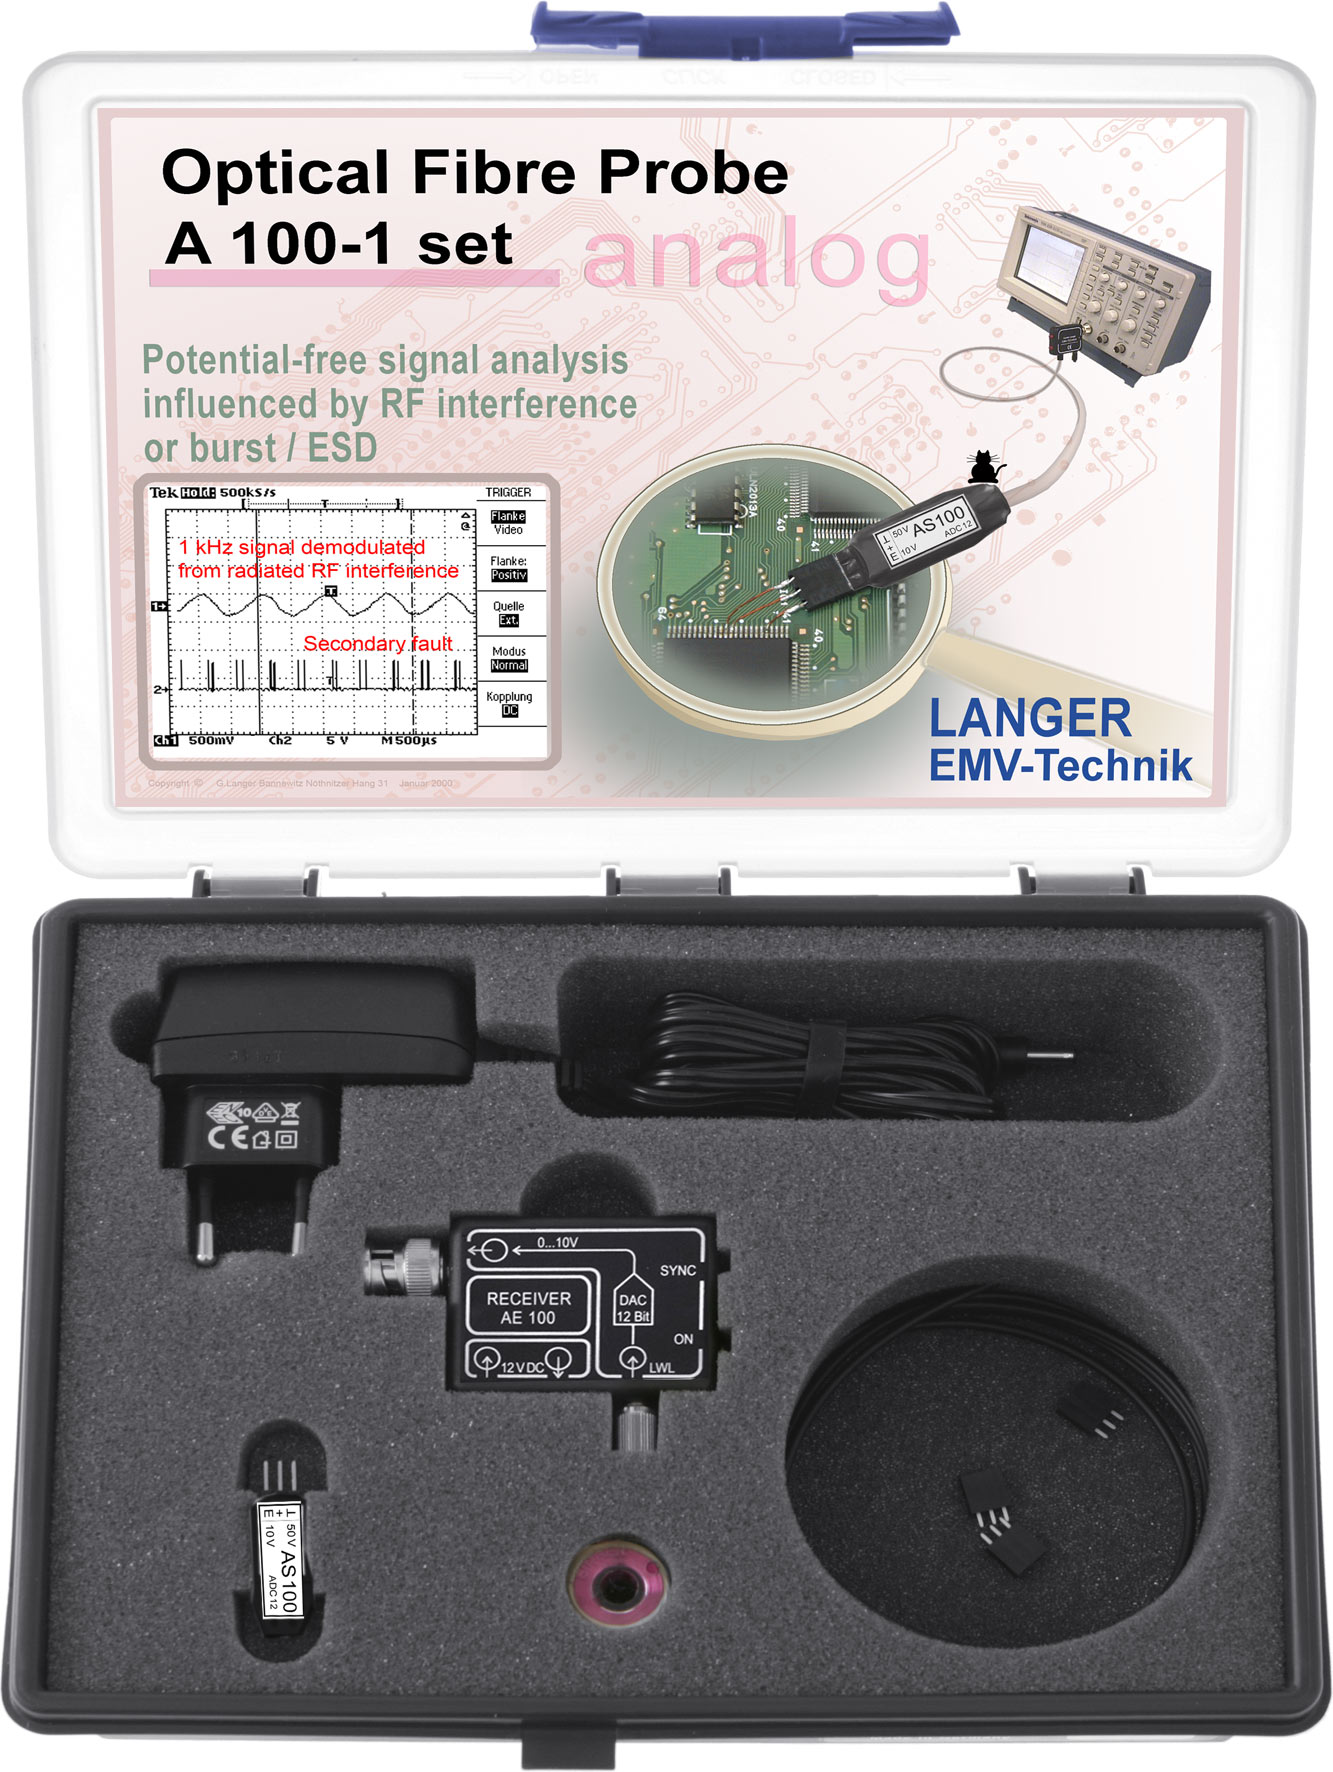 Langer Emv A100 1 Set Optical Fibre Probe Channel 25 Khz Fiber Circuit Boards And Components Optics Tool Kit Optic